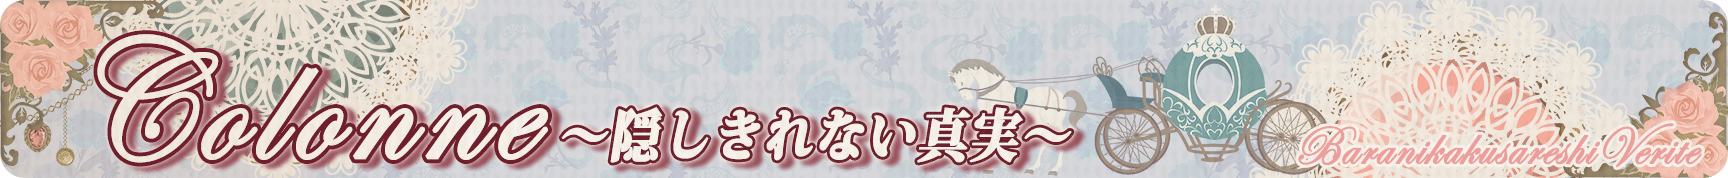 banner01.png